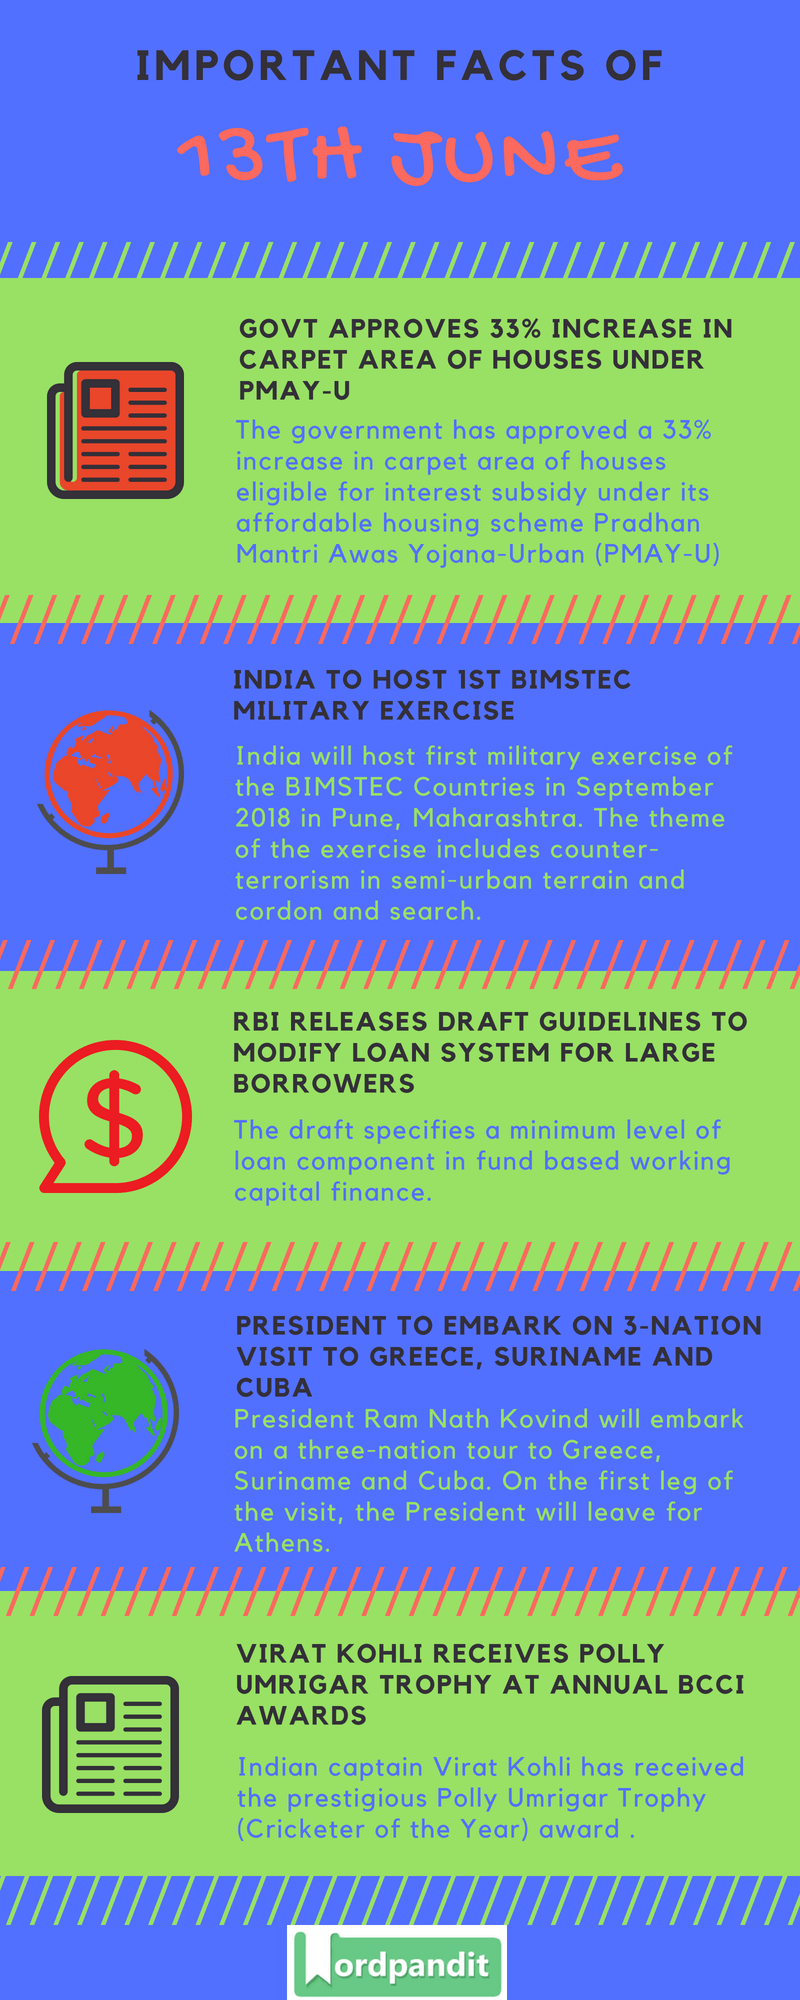 Daily Current Affairs 13 June 2018 Current Affairs Quiz June 13 2018 Current Affairs Infographic